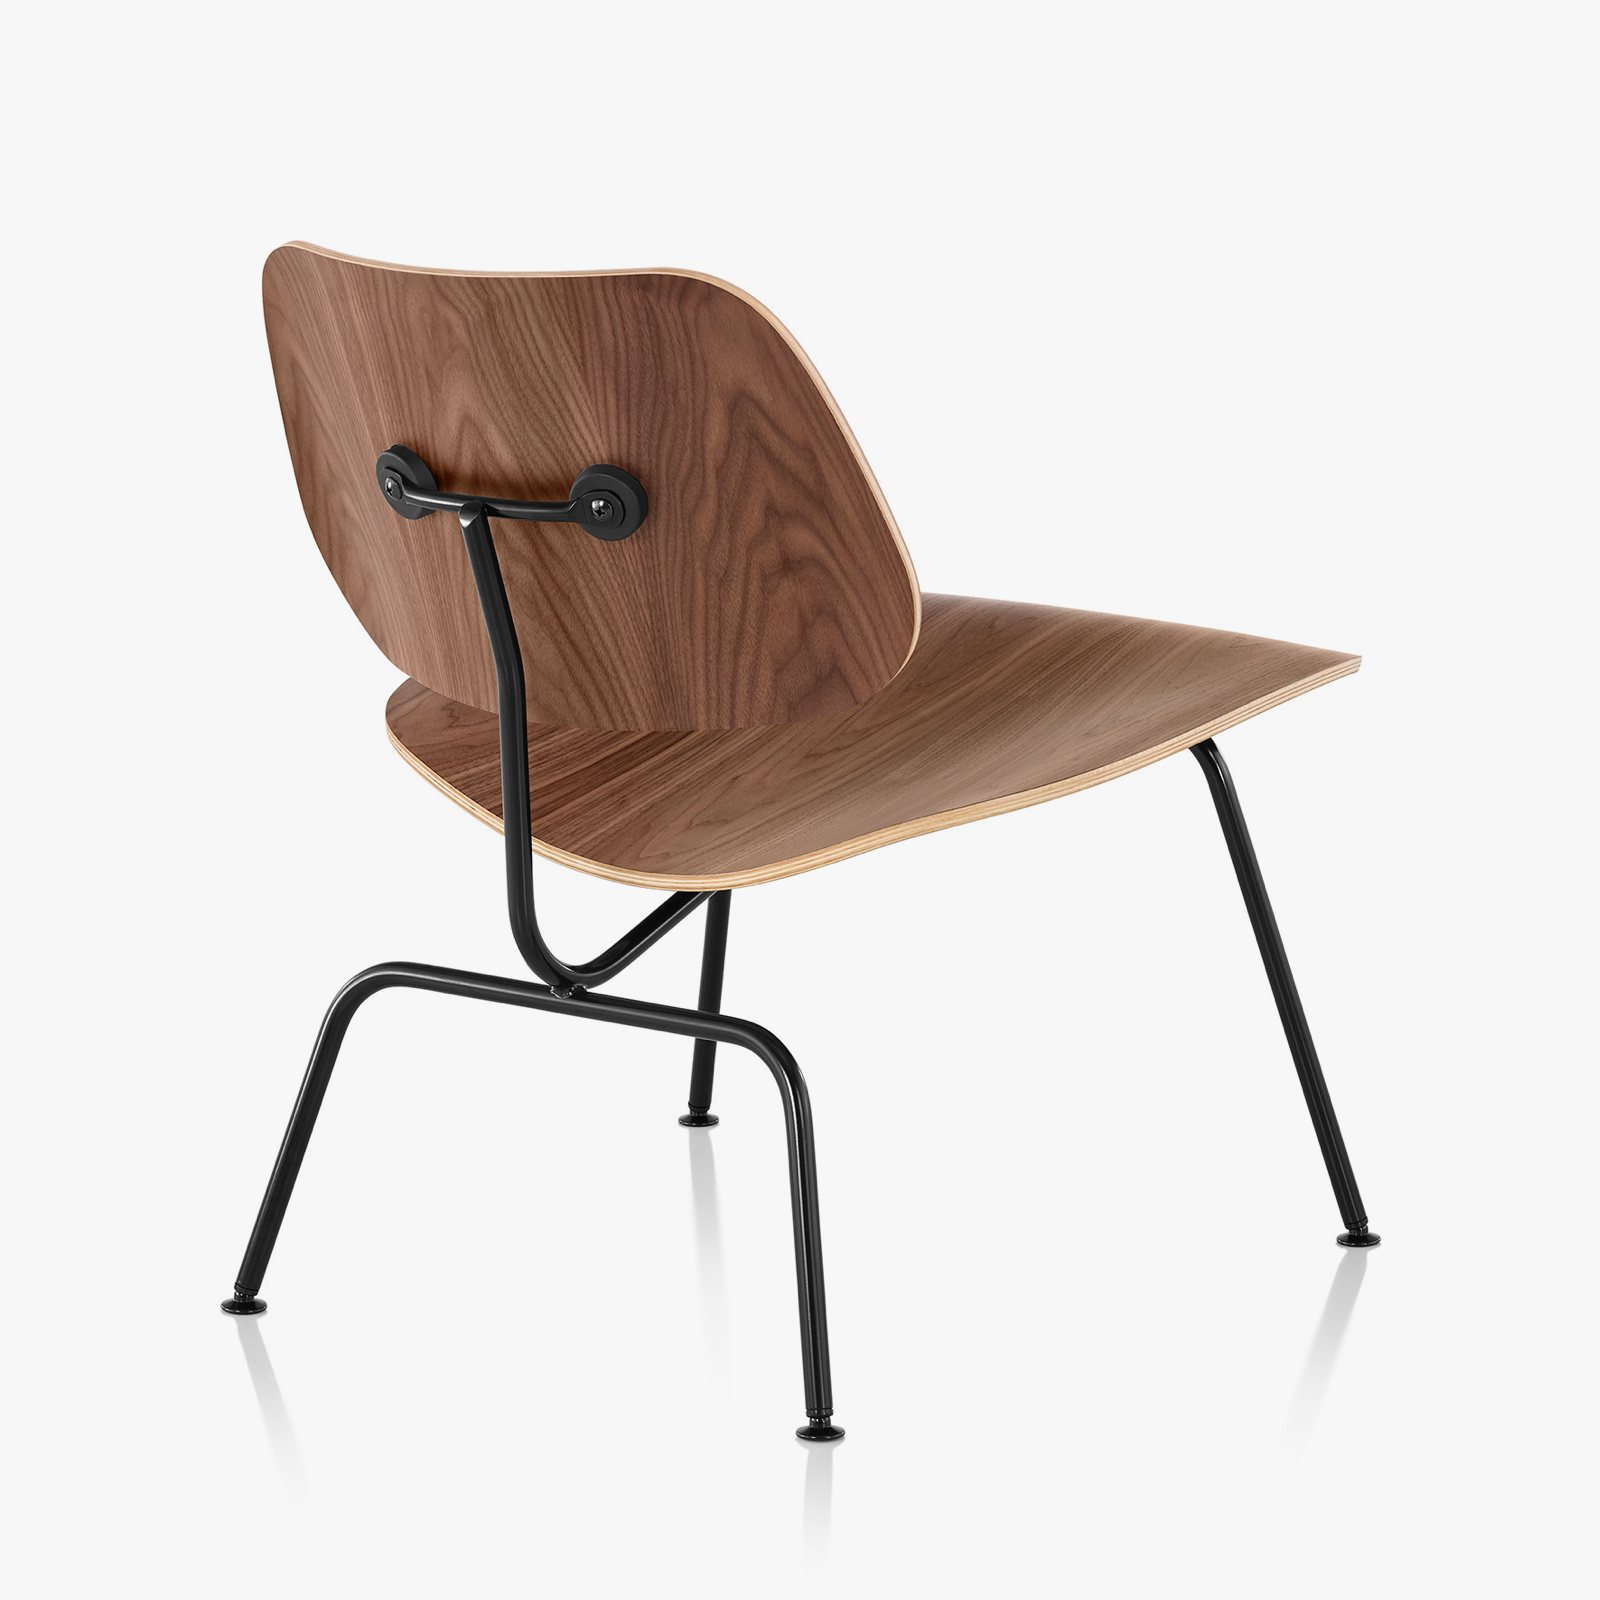 Eames Molded Plywood Lounge Chair Metal Base walnut + black back view. & Eames Molded Plywood Lounge Chair with Metal Base by Charles u0026 Ray ...